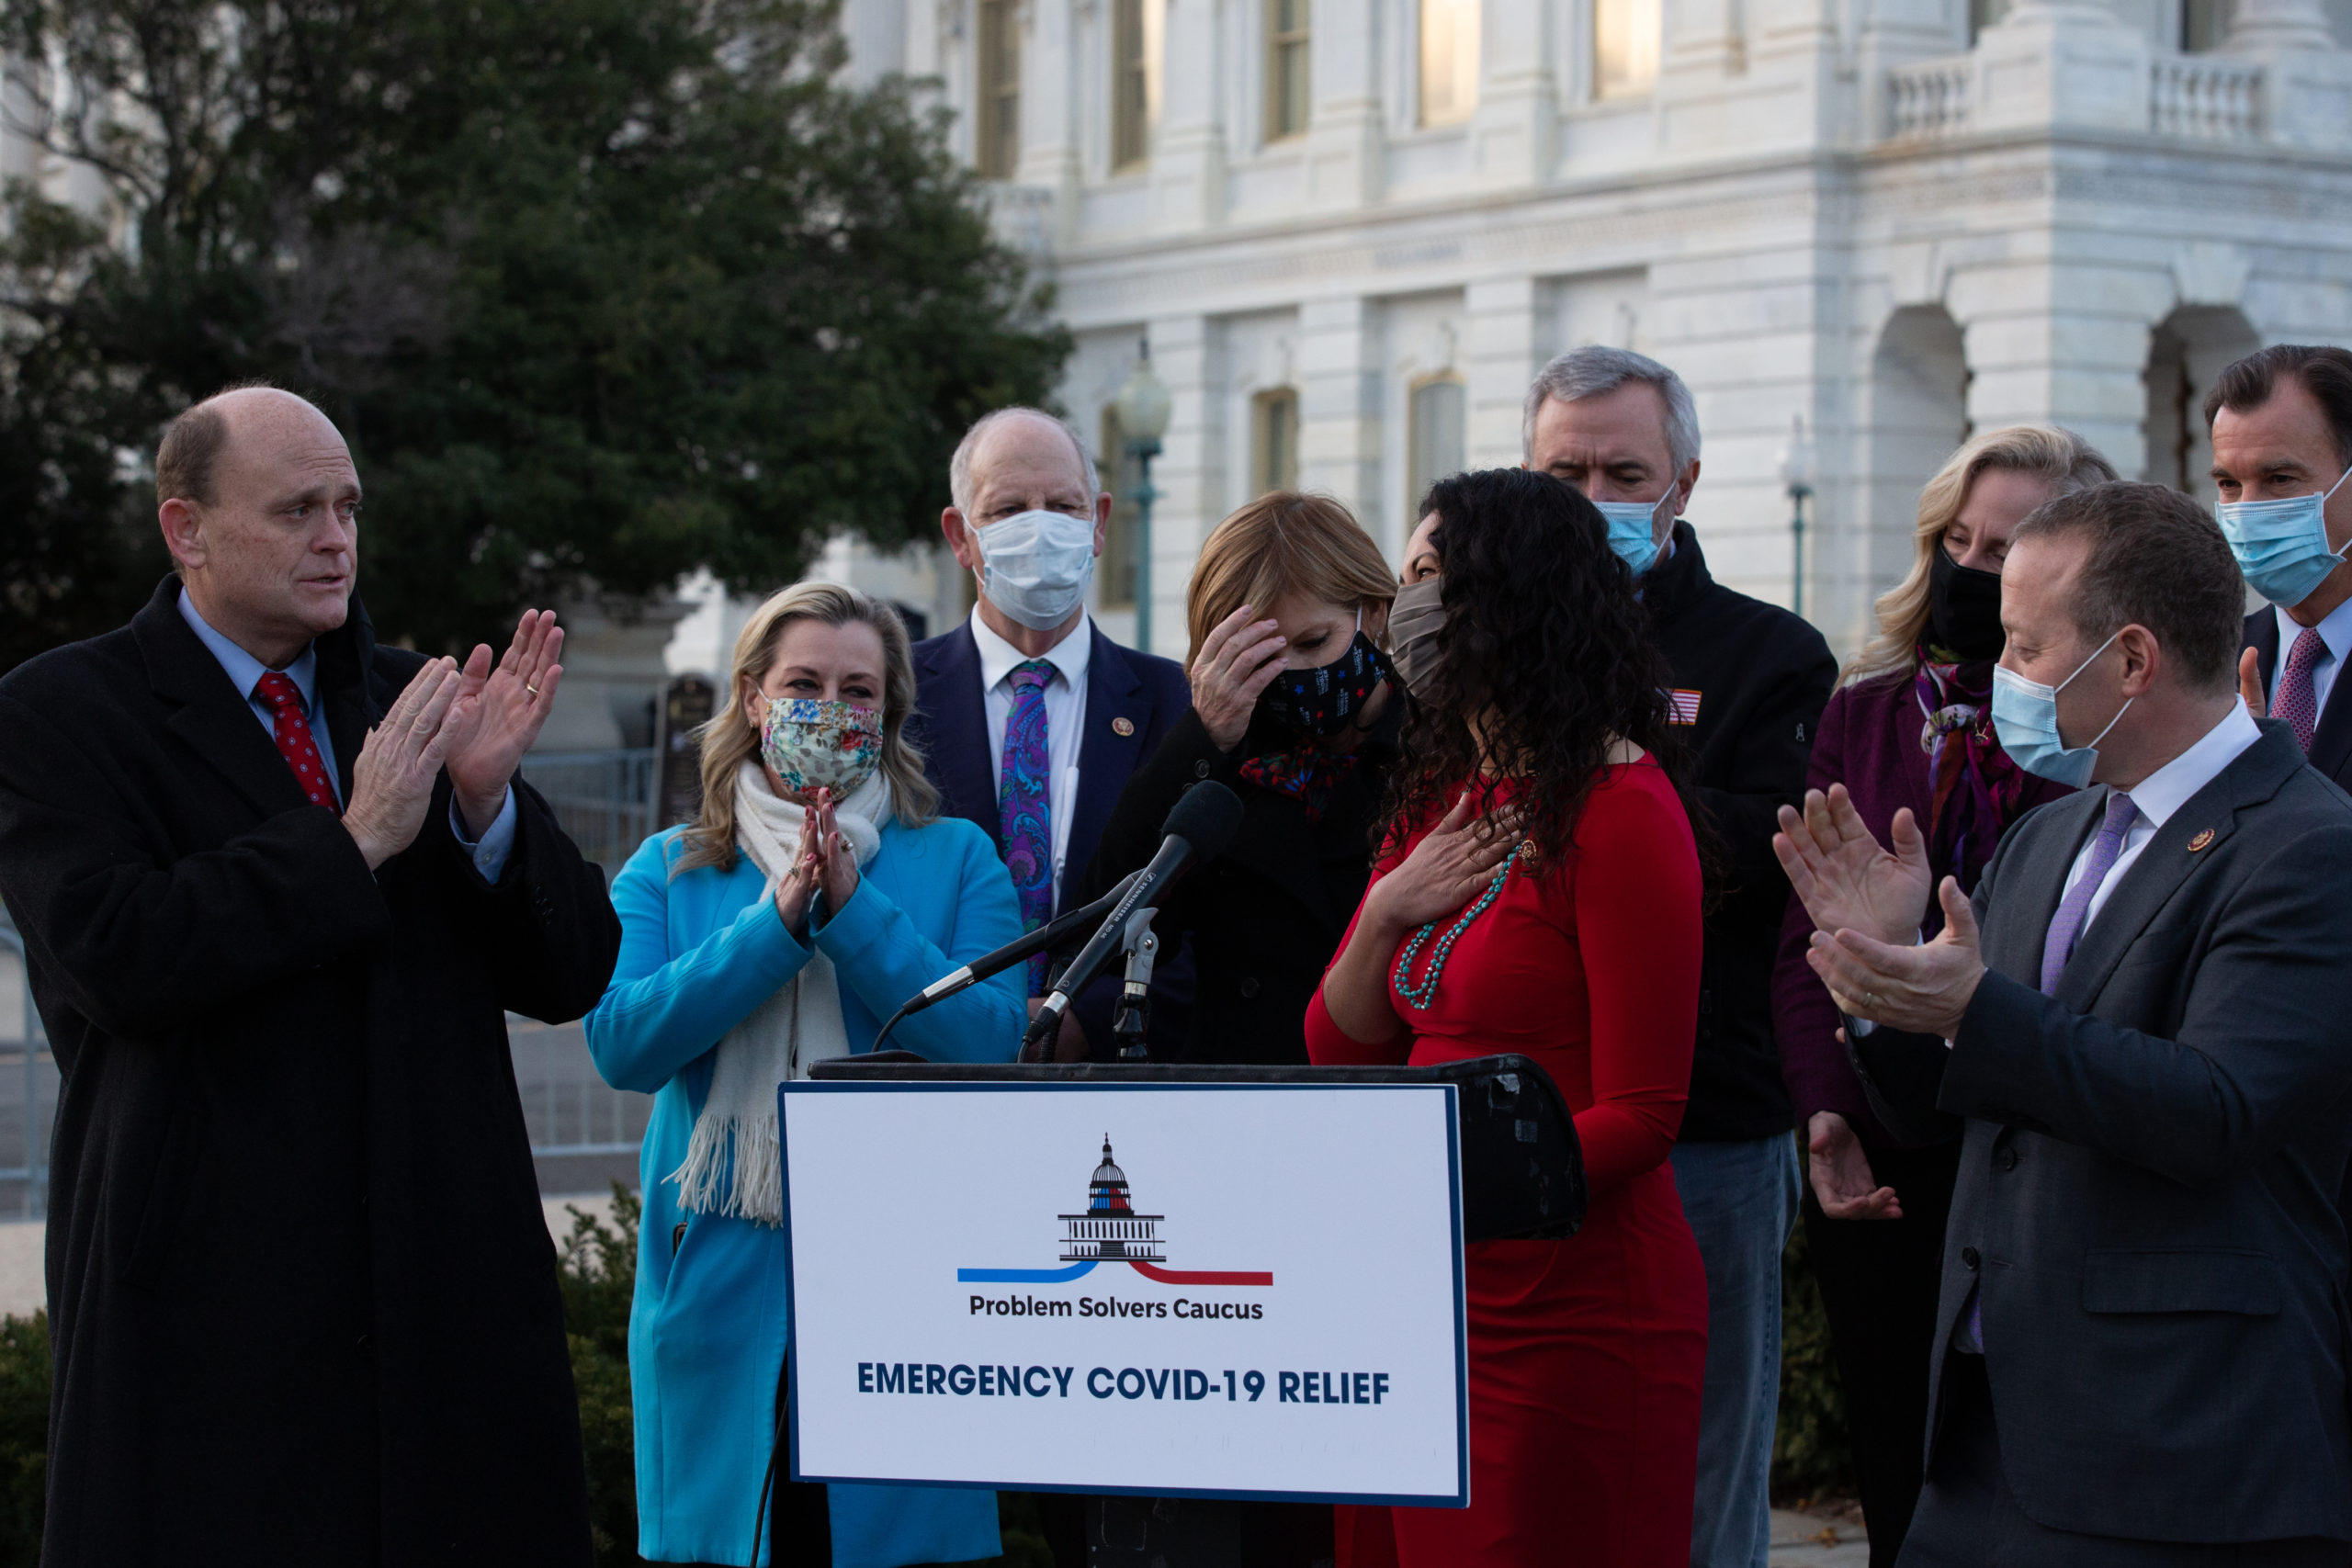 Rep. Xochitl Torres Small speaks with other members of the Problem Solvers Caucus to praise the forthcoming passage of the bipartisan emergency coronavirus relief bill during a press conference Monday in Washington, D.C. (Cheriss May/Getty Images)